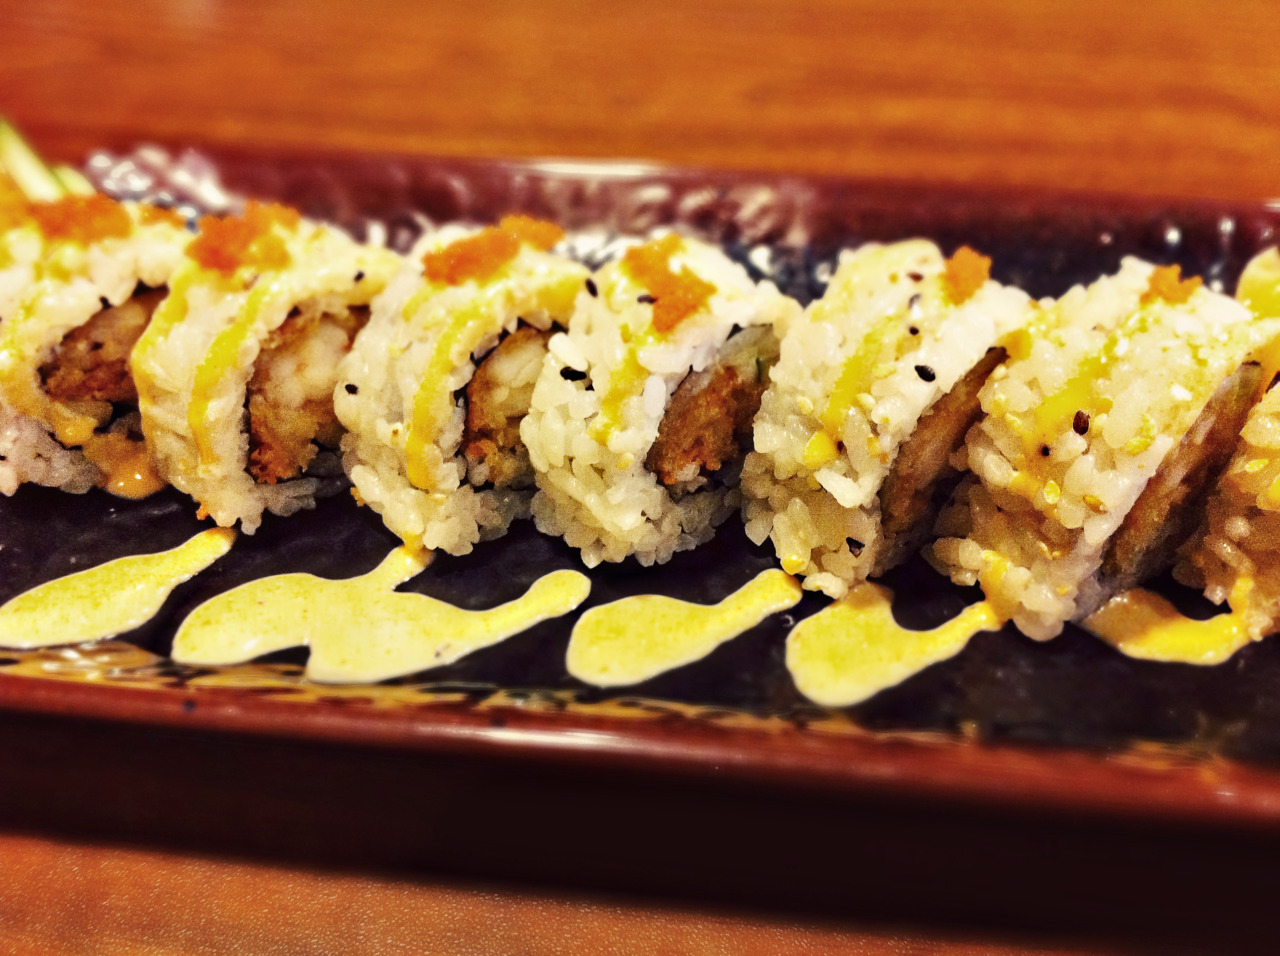 The shrimp tempura roll was a lunch special today. So I ate it. Mmm…